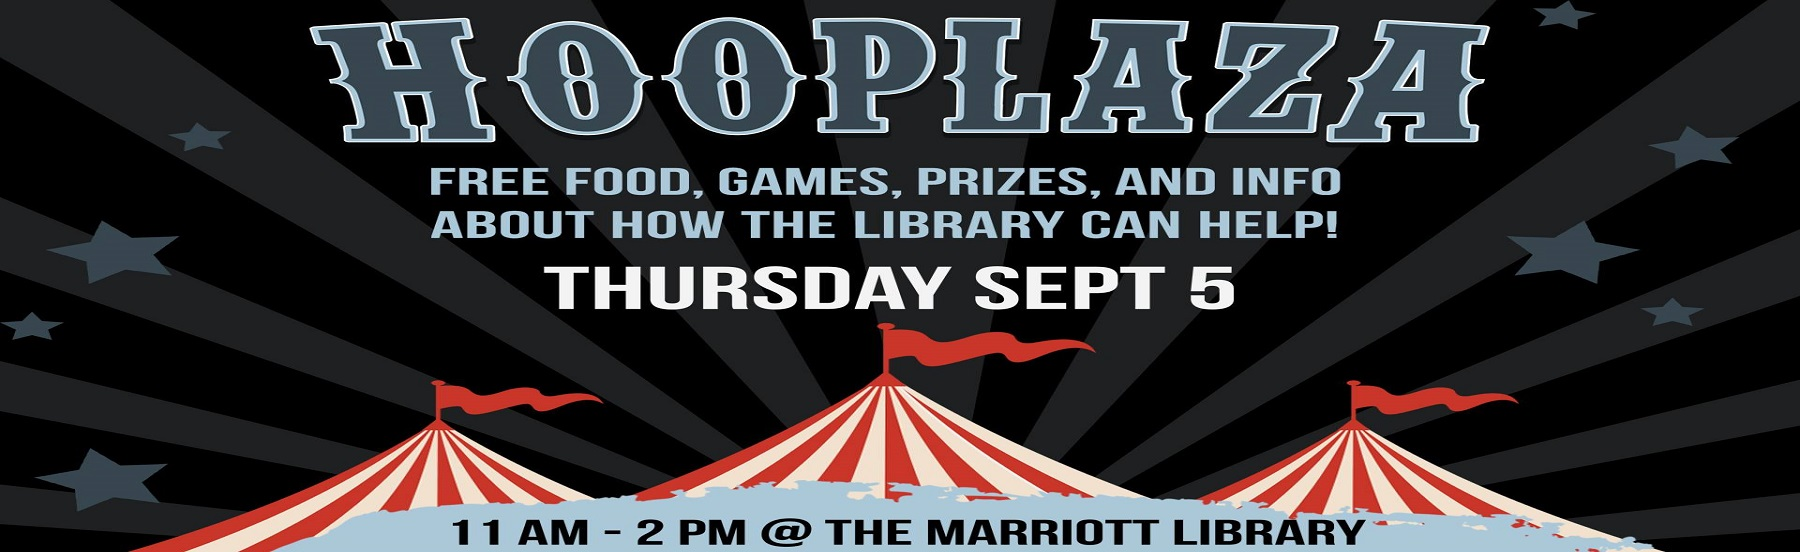 Hooplaza at the Library on September 5th